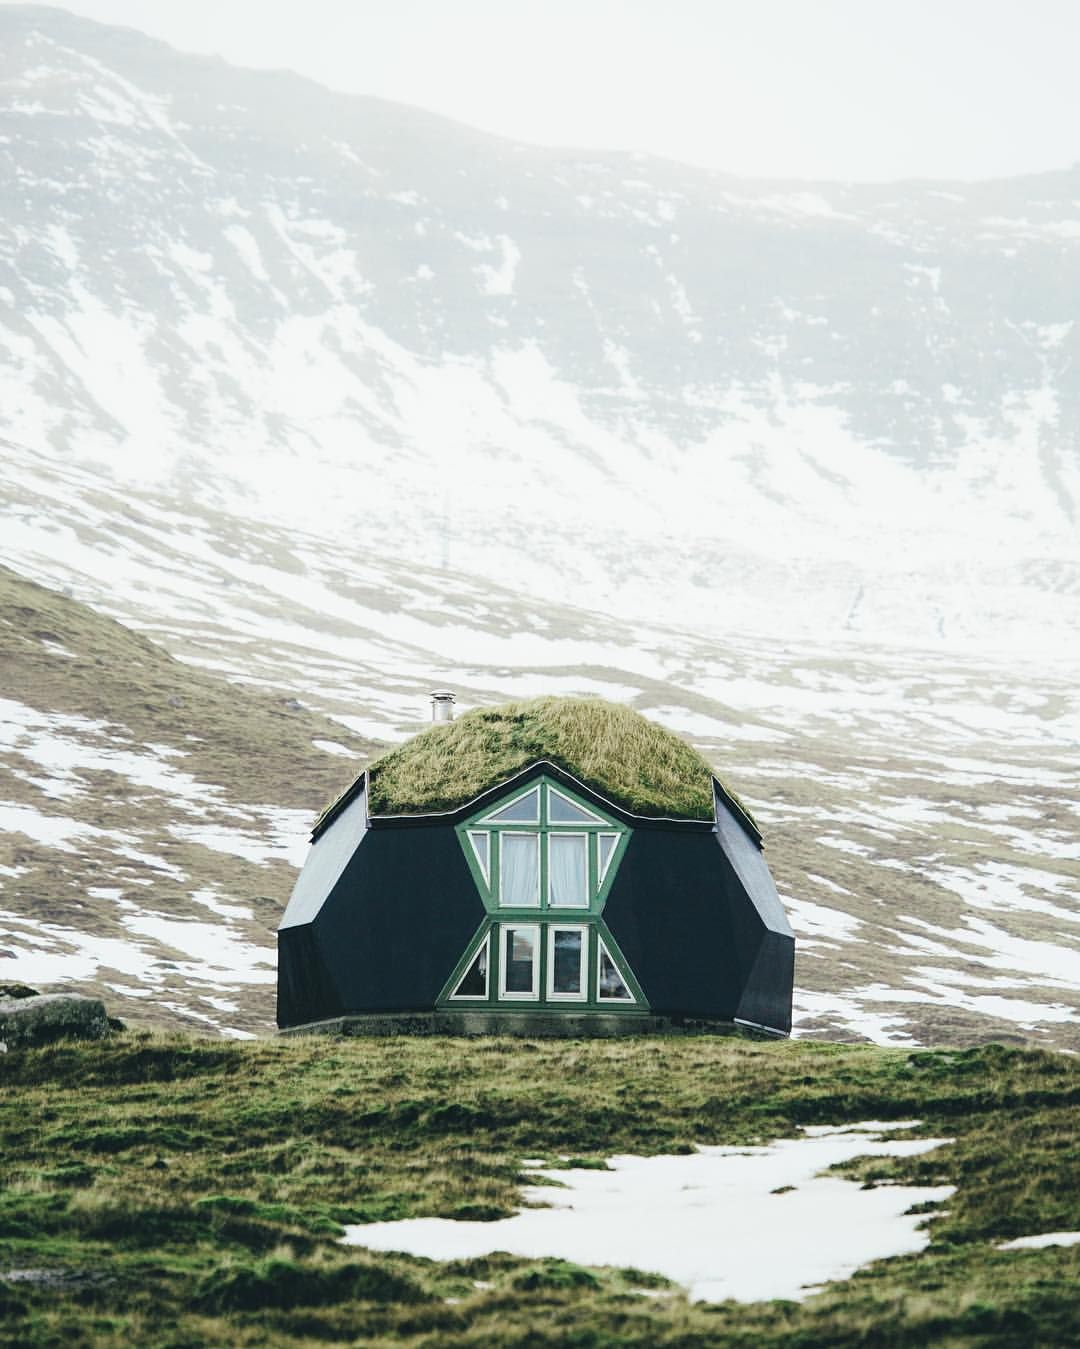 Places To Rent Out: The Kvivik Igloo On The Faroe Islands. Yes, You Can Rent